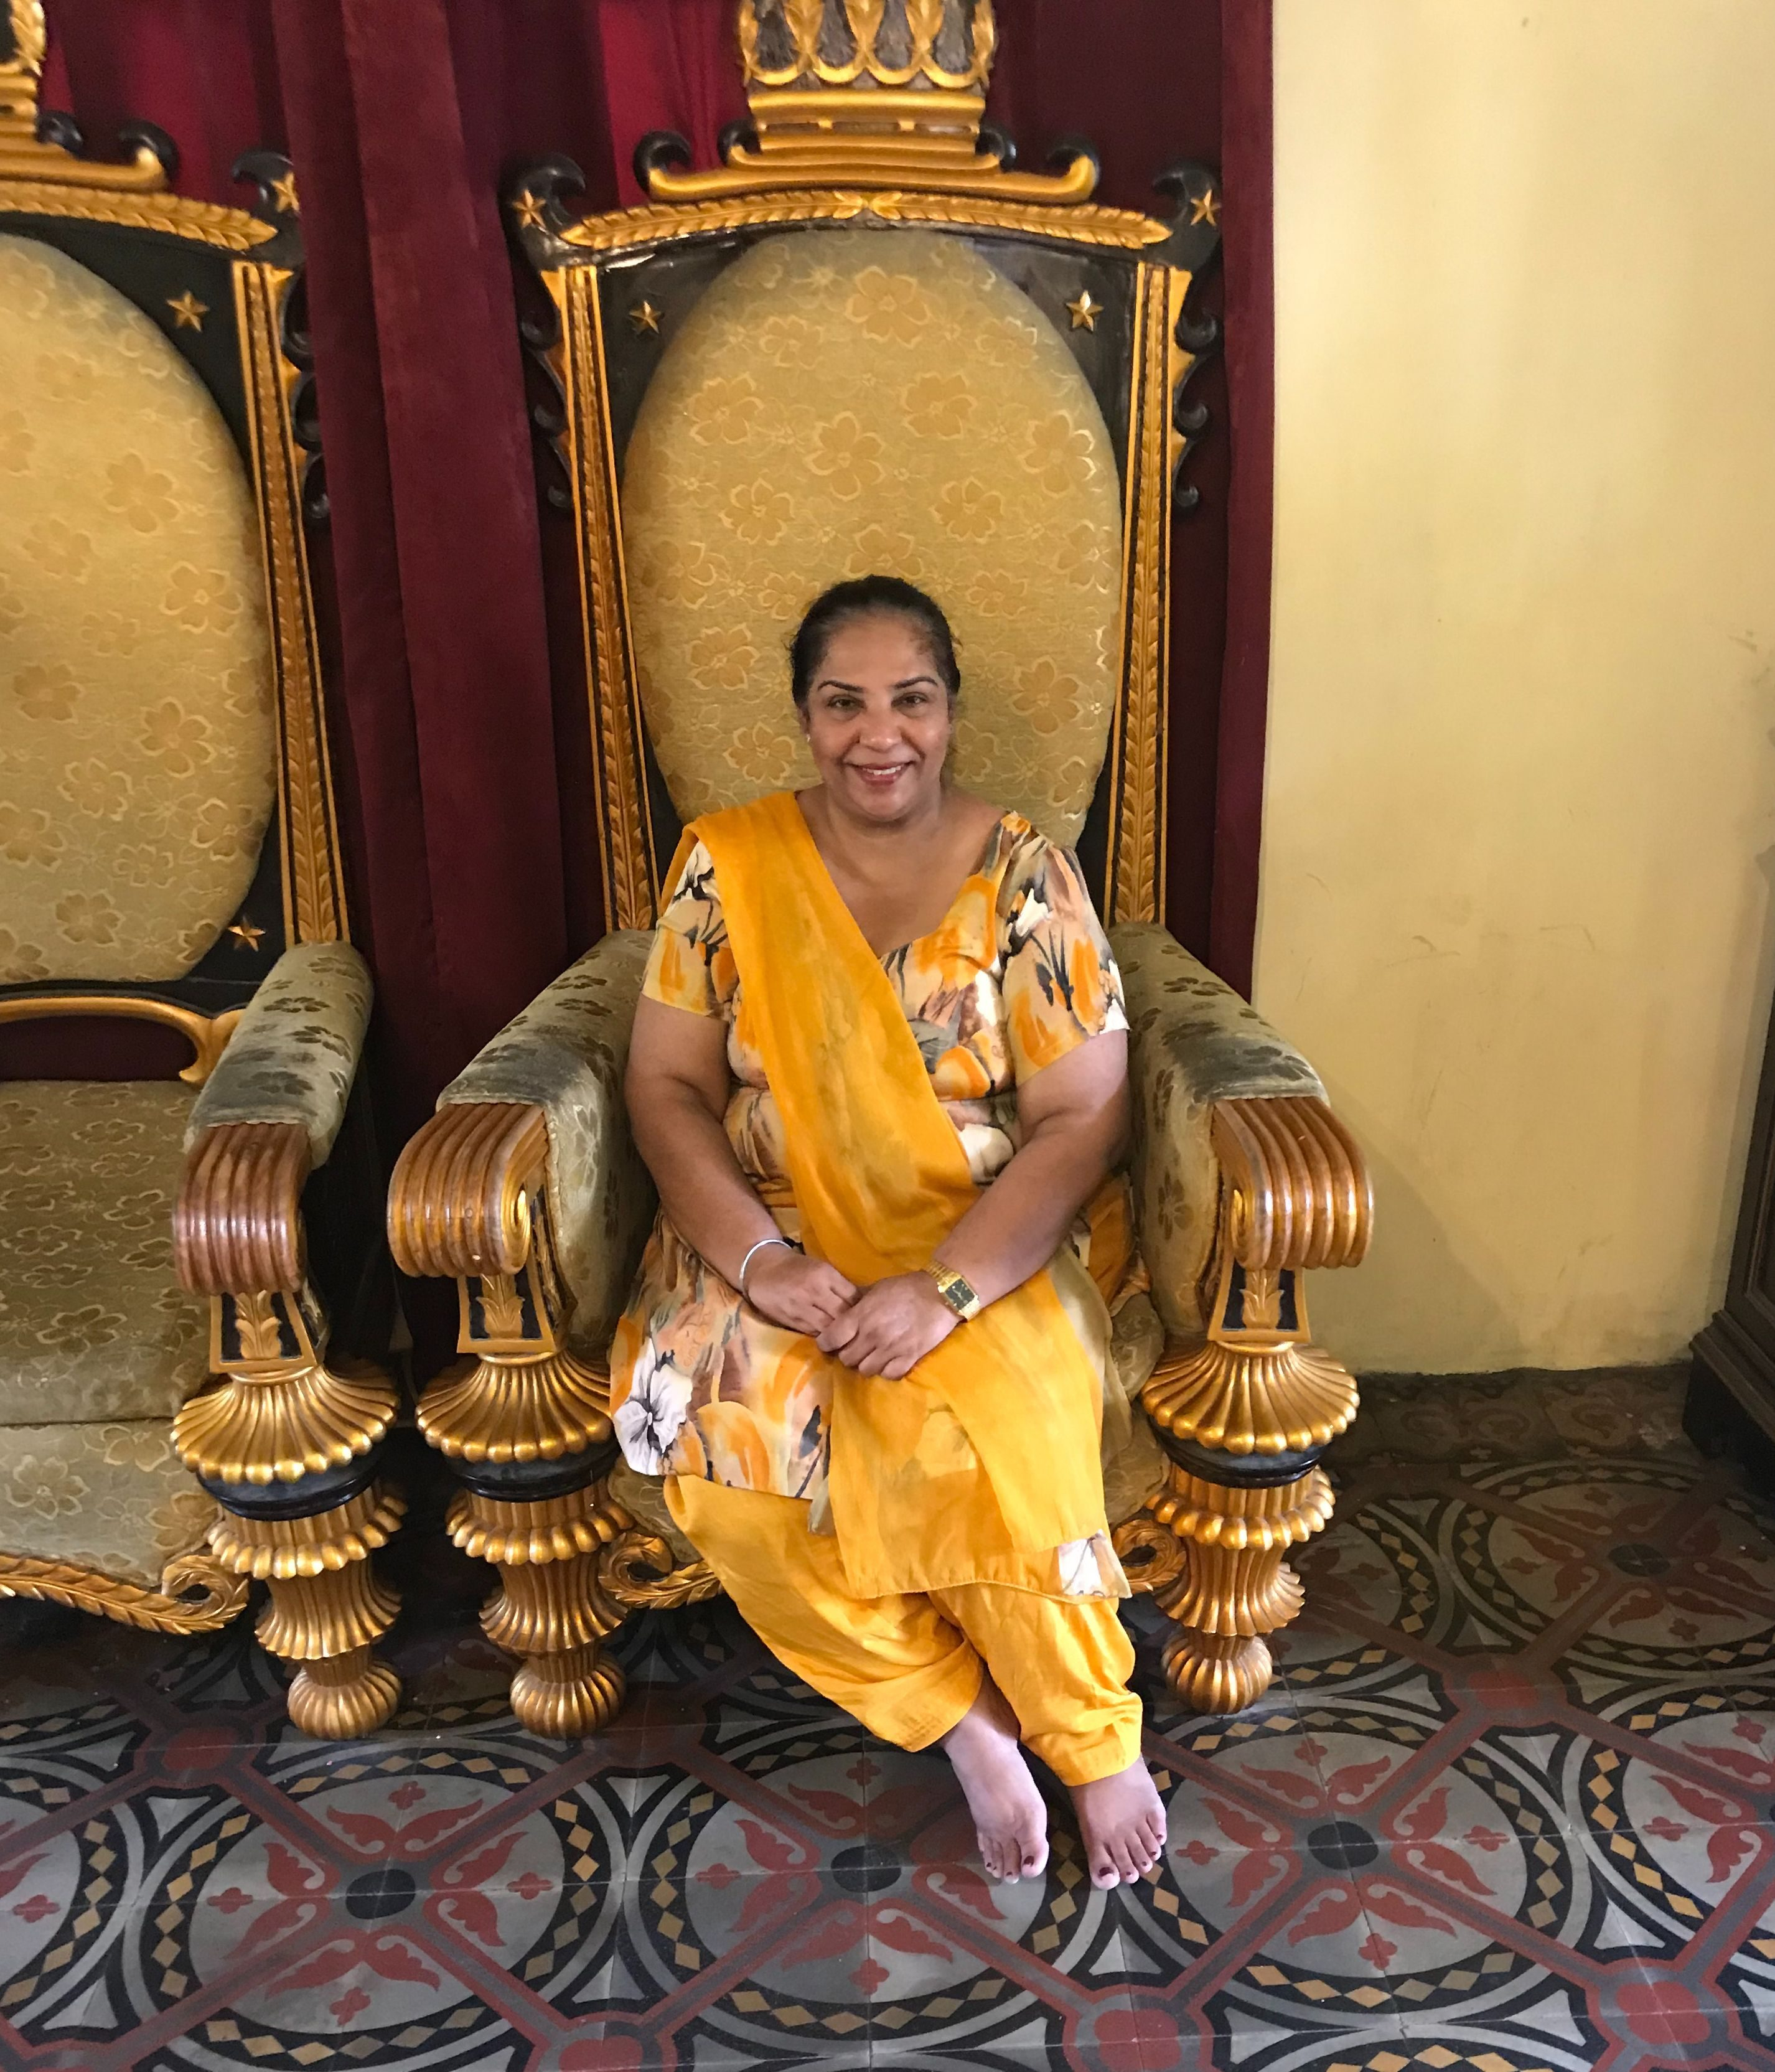 Harjit poses with a smile in her beautiful orange saree while sitting on a throne - like chair